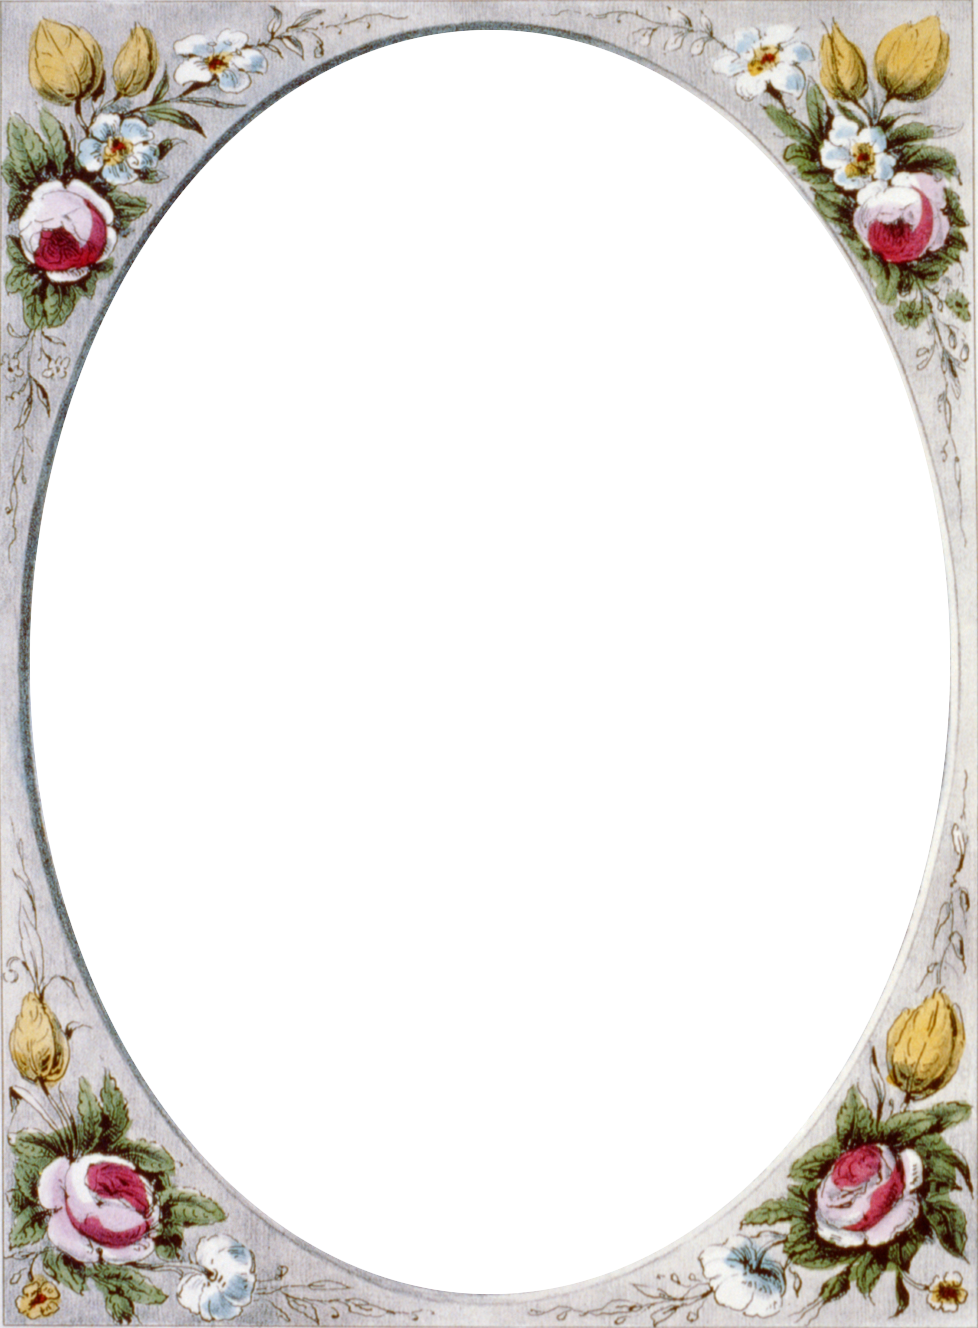 Floral vintage frame call. Patience clipart border